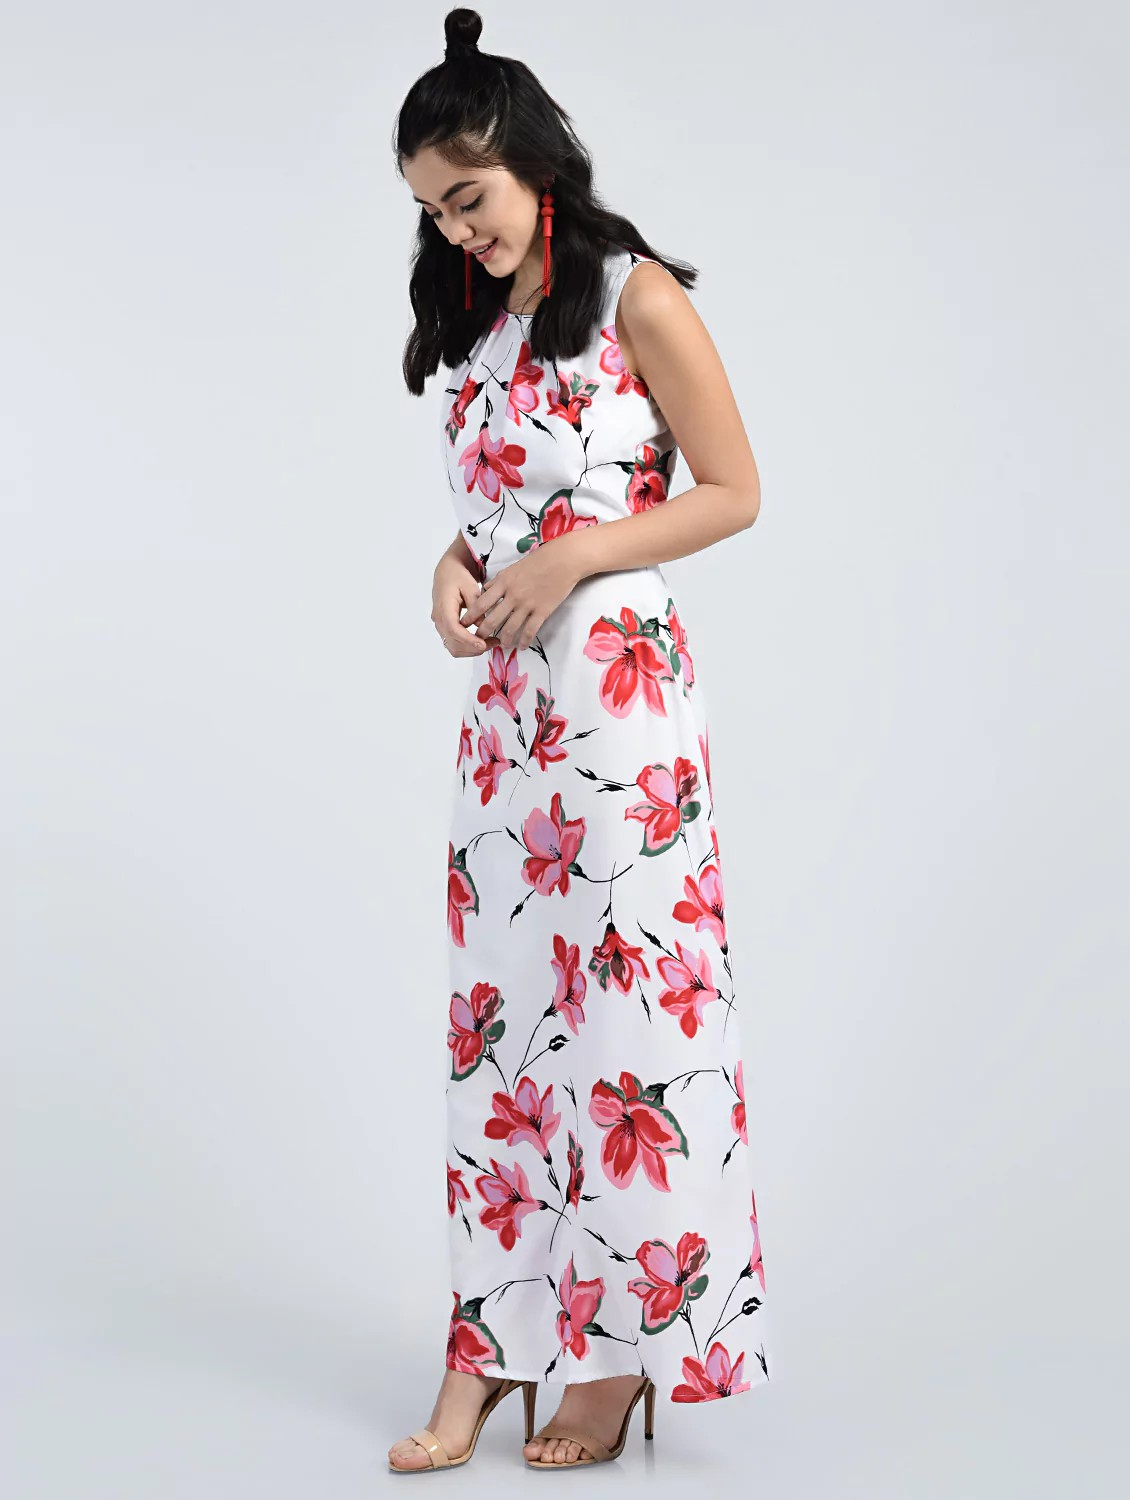 ca612a283a Buy Floral Maxi Dress for Women from A K Fashion for ₹550 at 58% off